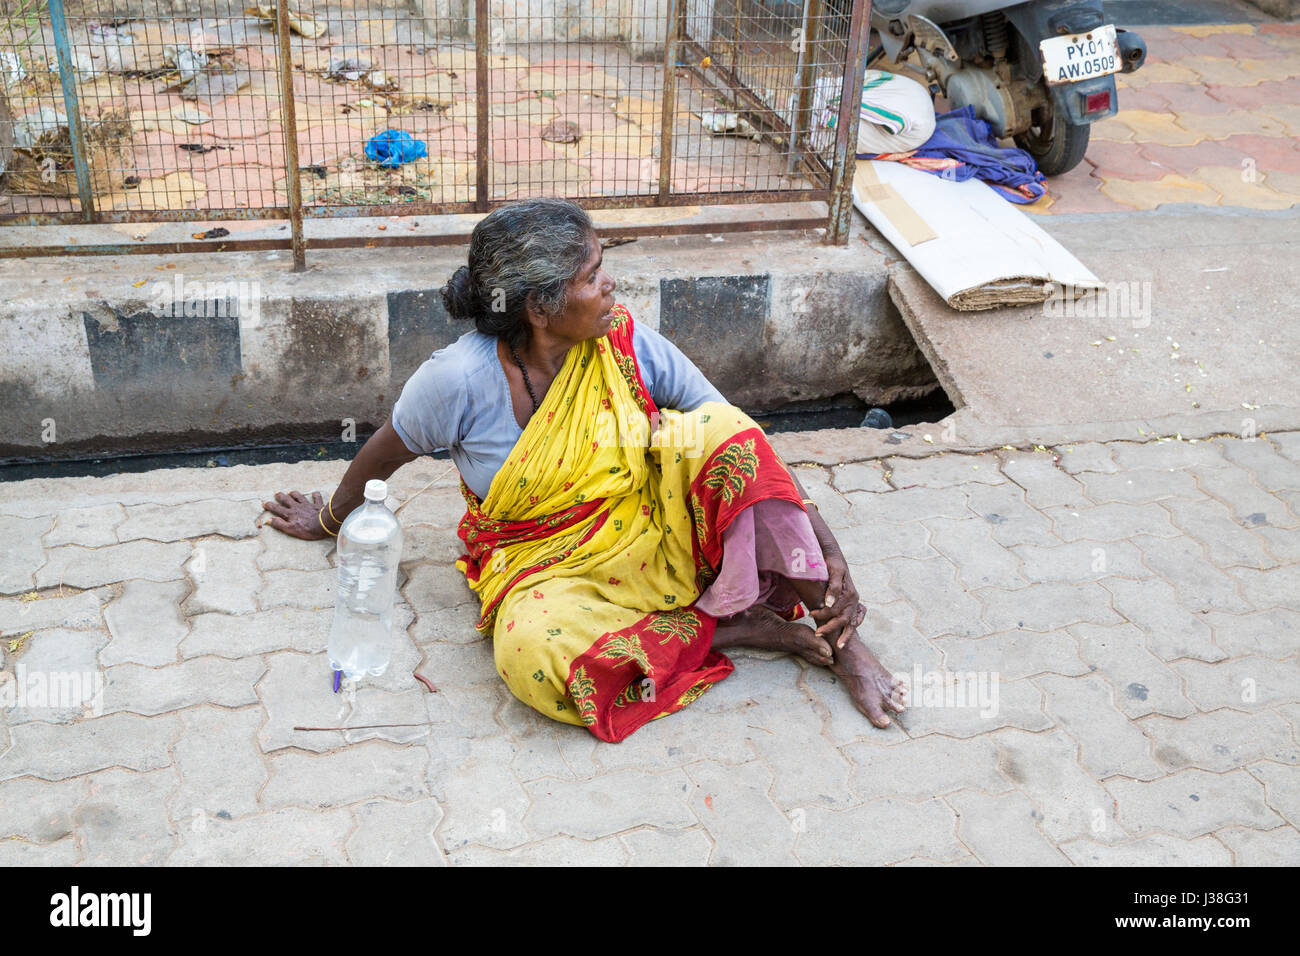 Documentary editorial image. Pondicherry, Tamil Nadu, India - June 23 2014. Very poor woman sitting in the street asking for food Poverty Stock Photo